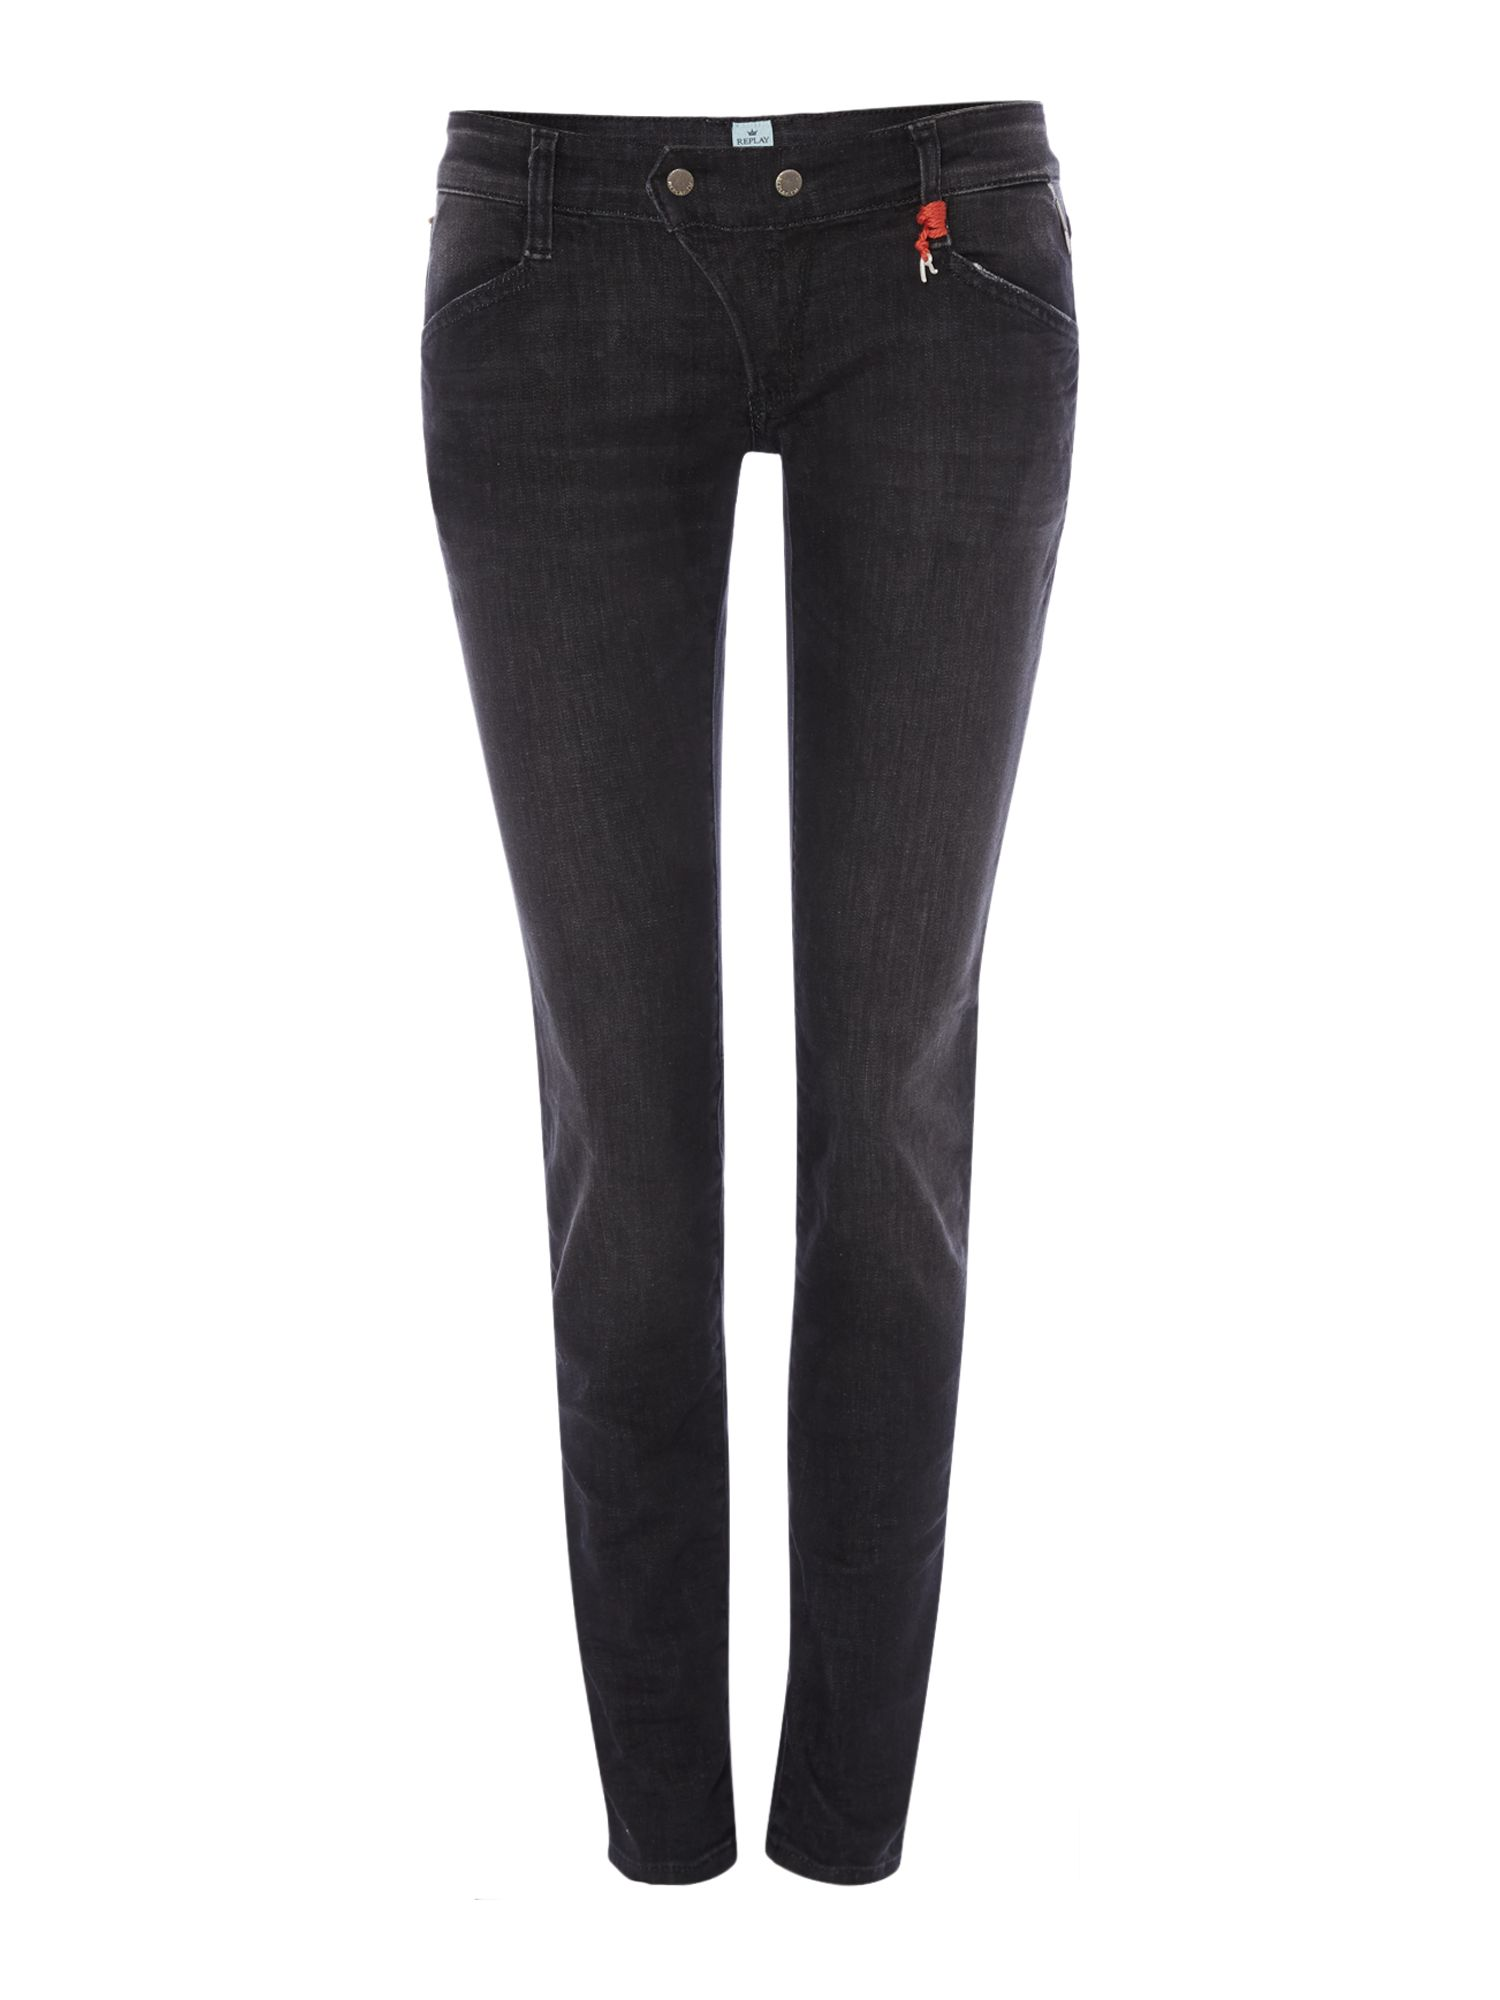 Suzanne skinny fit tight leg jeans